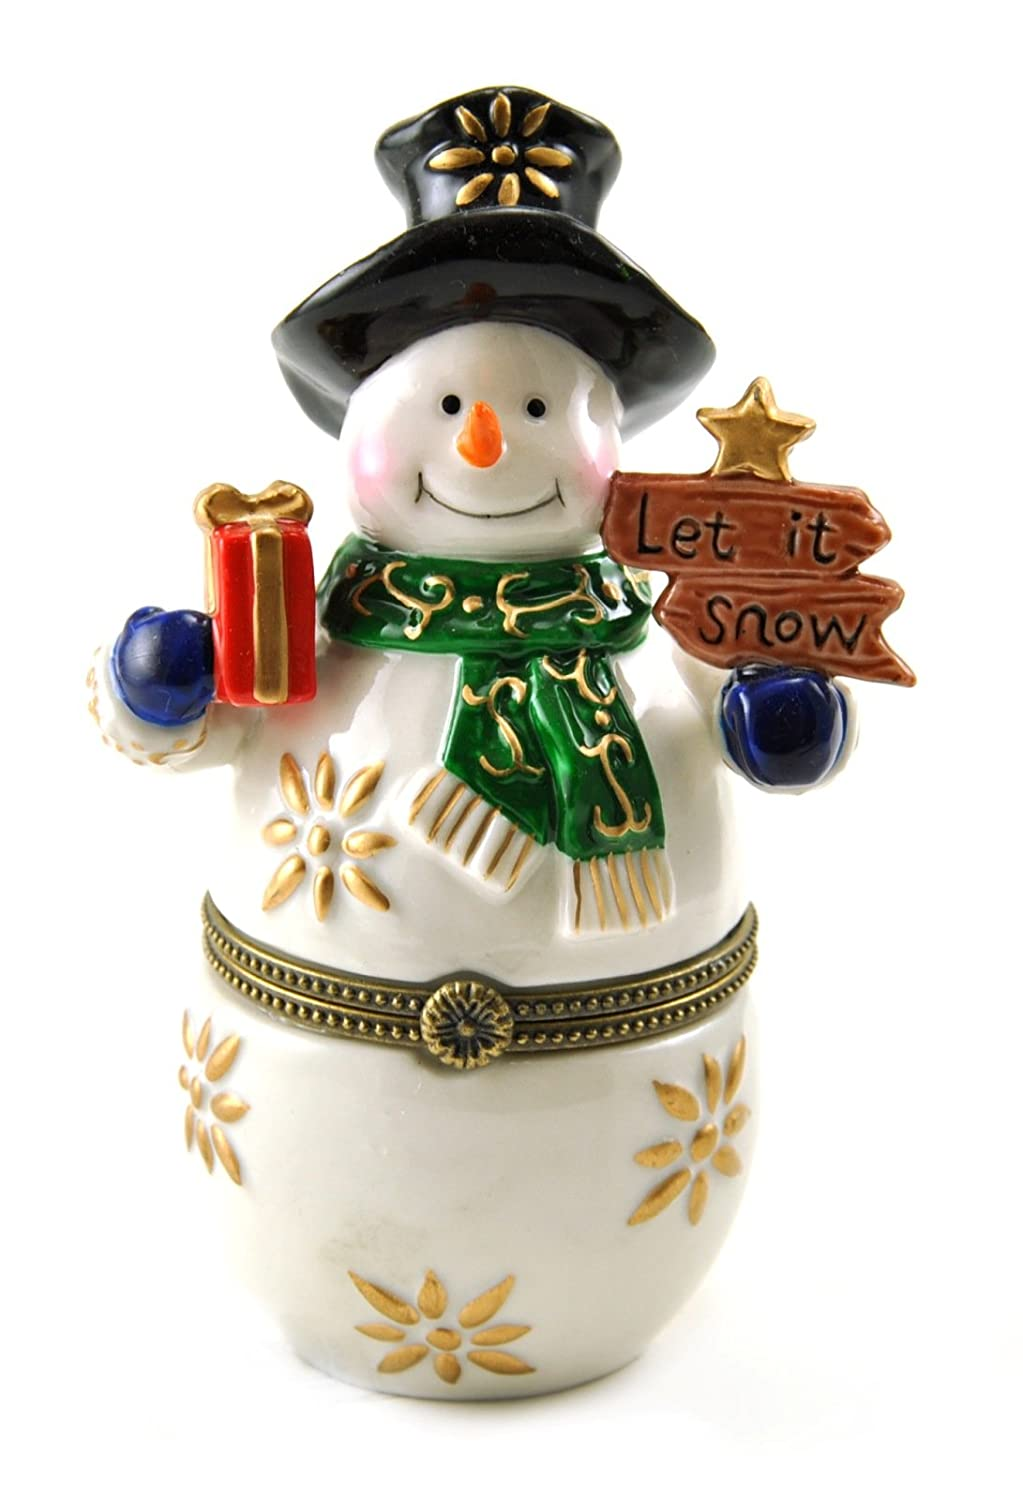 Let It Snow Jolly Happy Snowman Hinged Porcelain Trinket Box